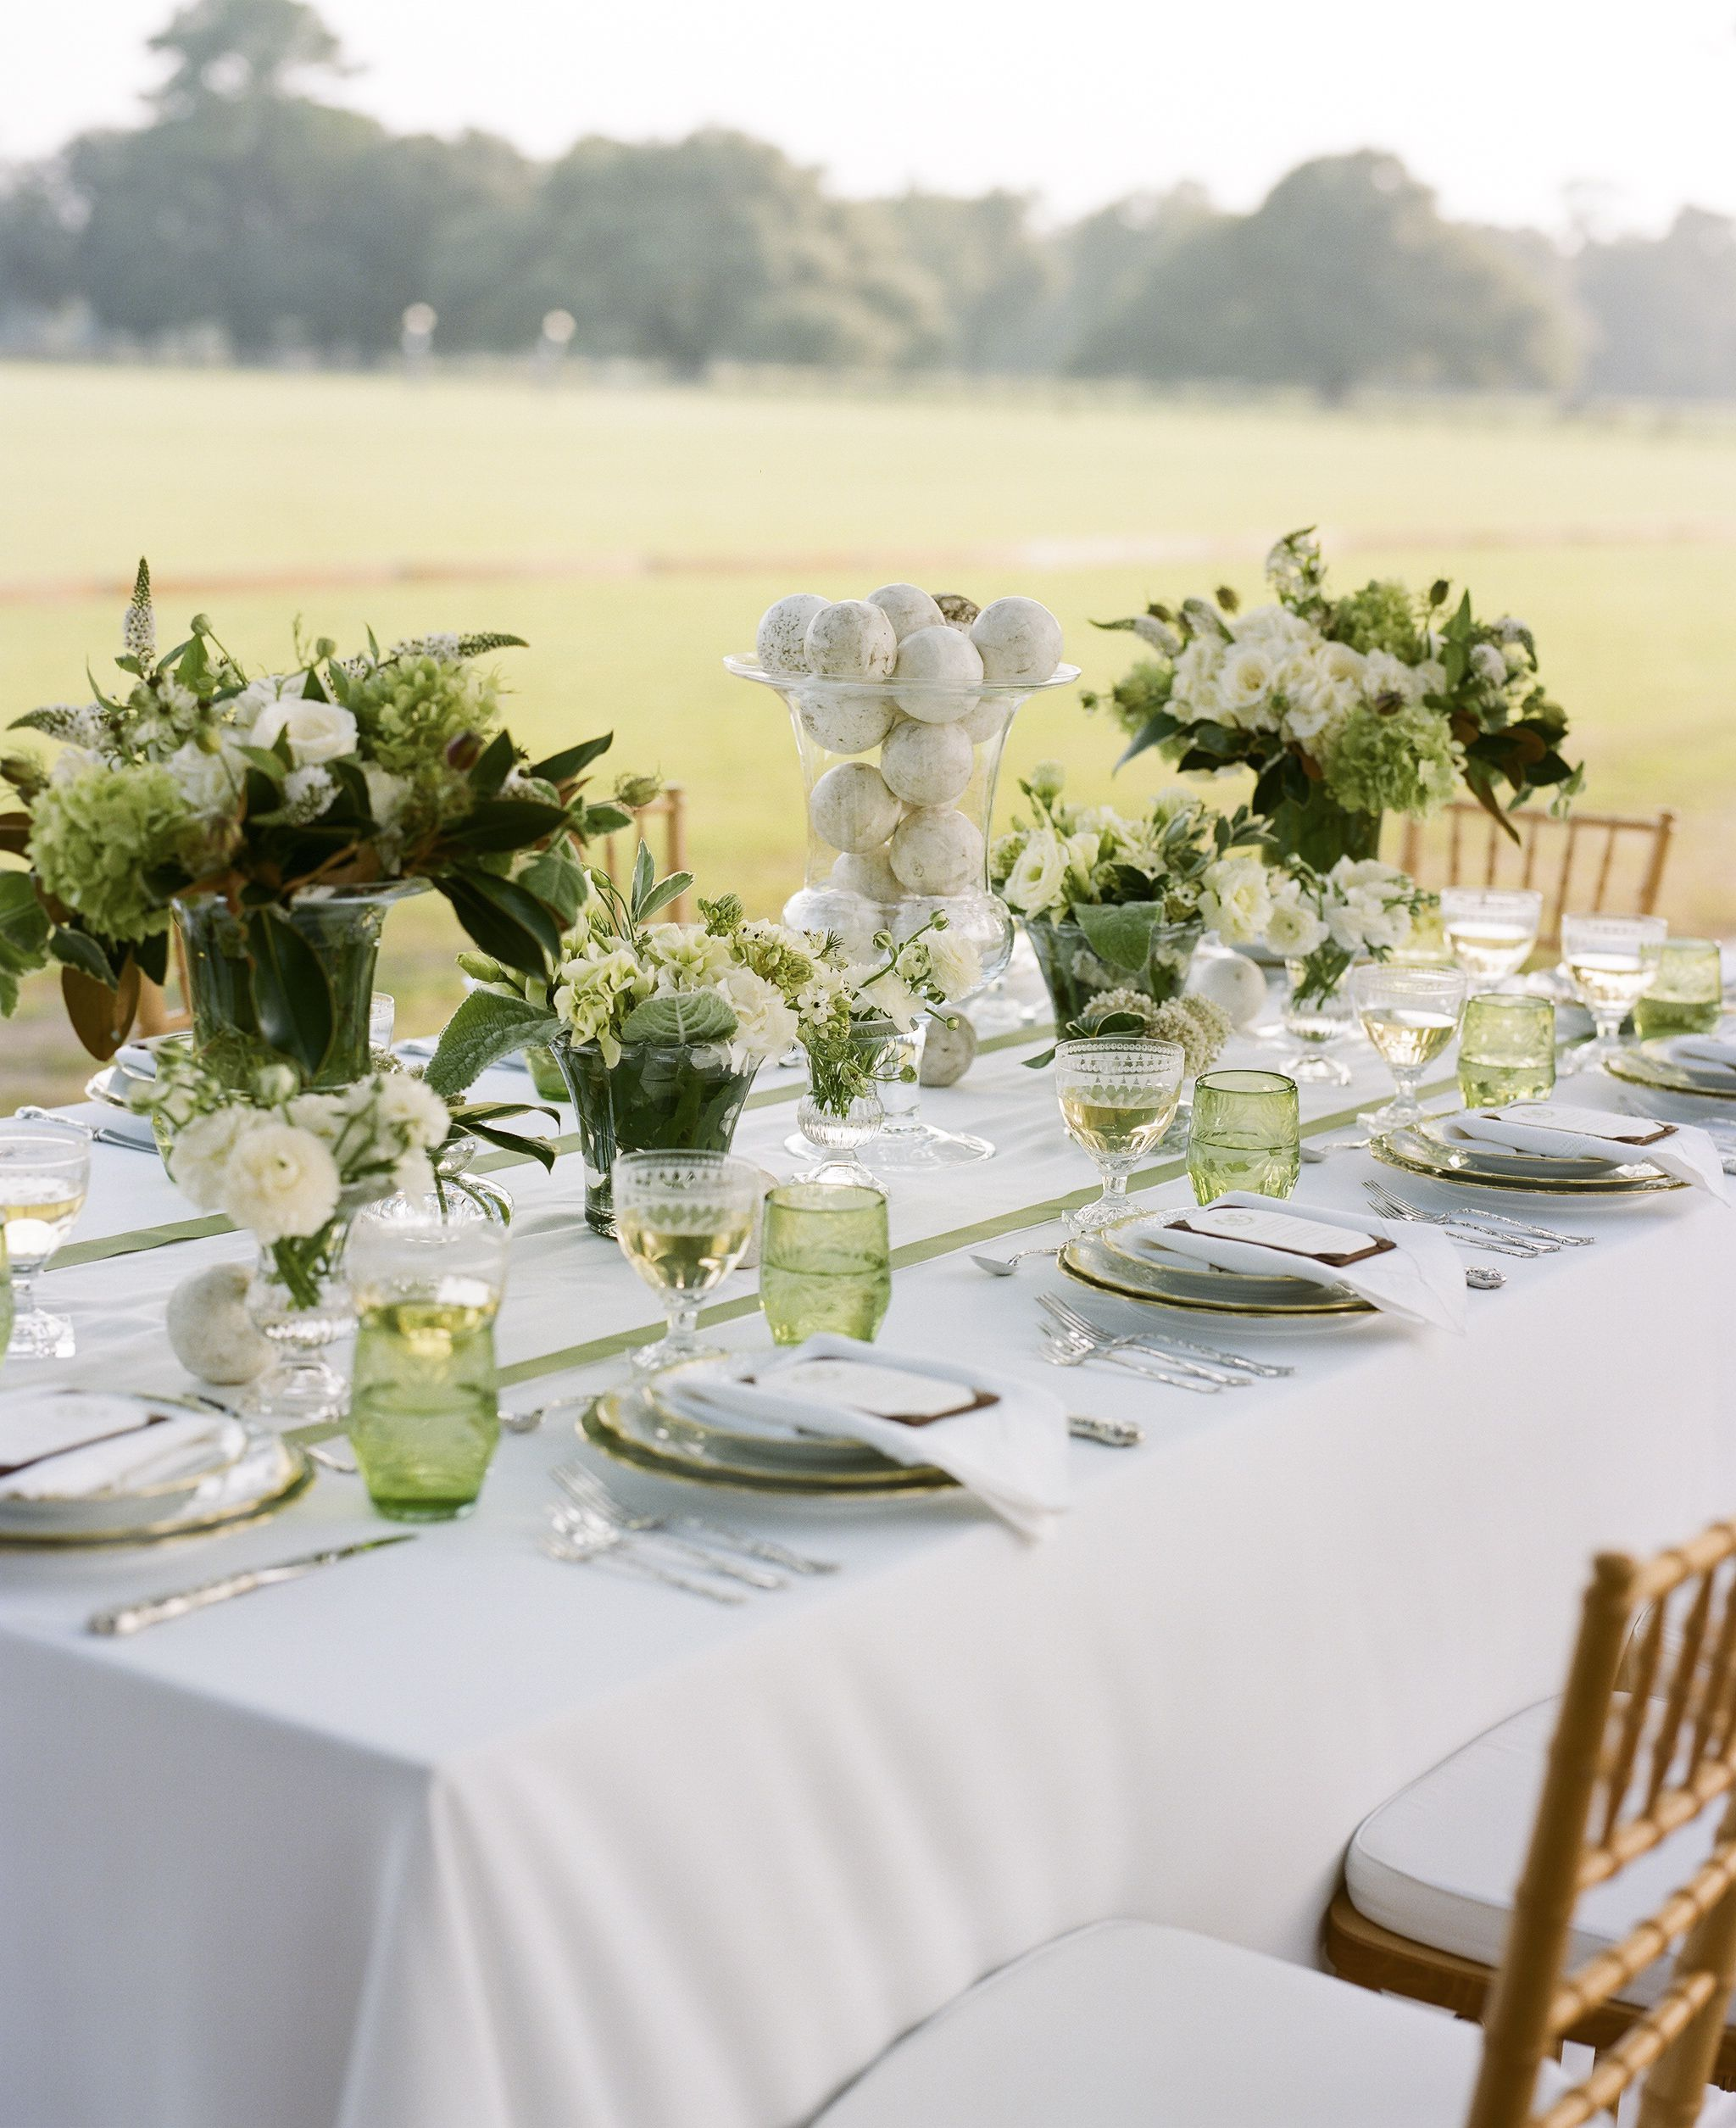 Spring Wedding Inspiration - Spring Table Ideas